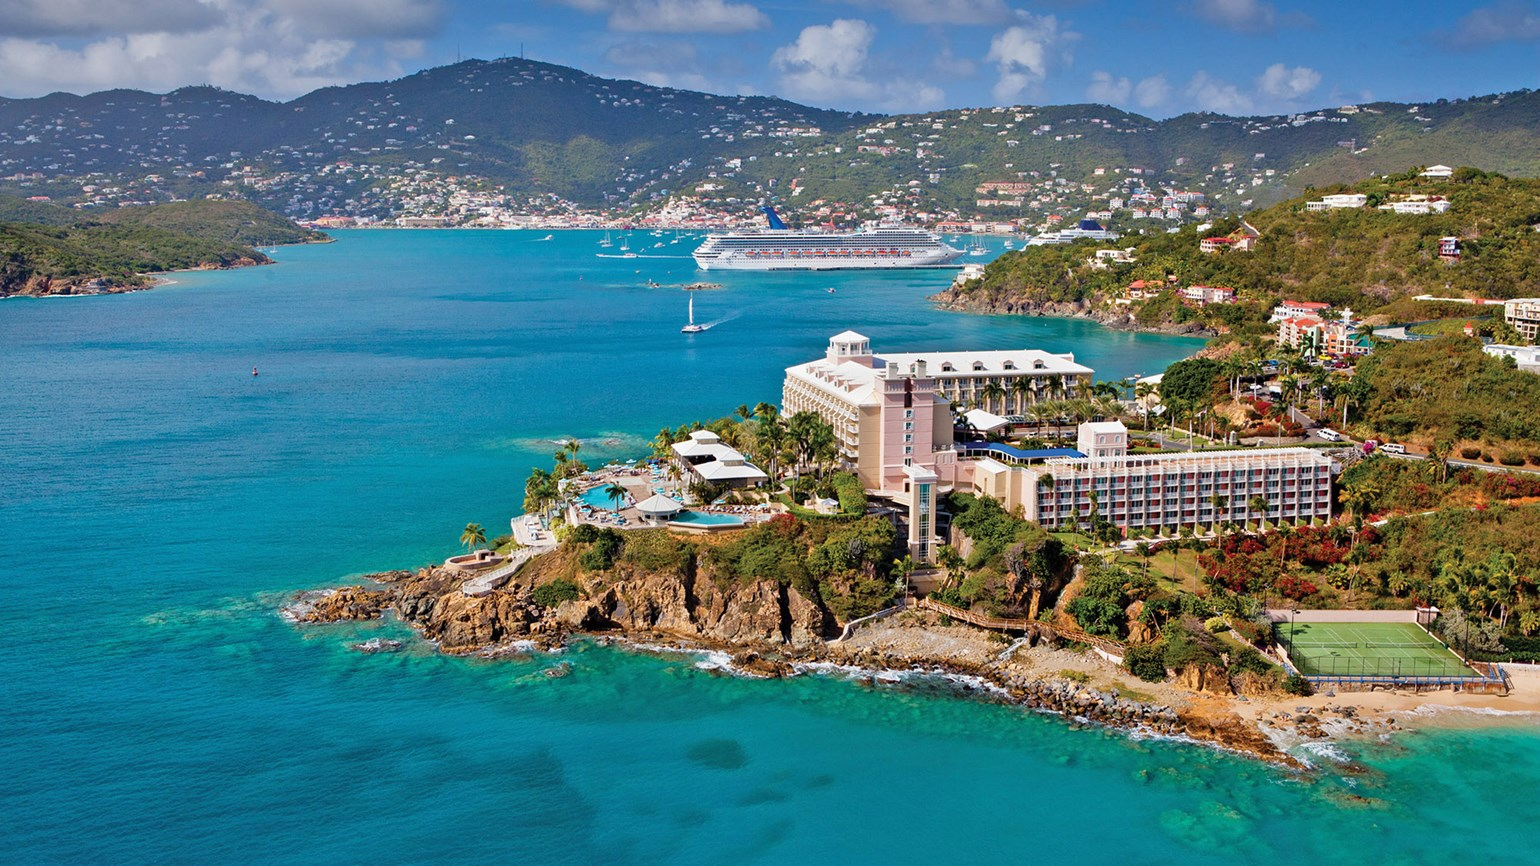 The water's fine at Frenchman's Reef Marriott: Travel Weekly